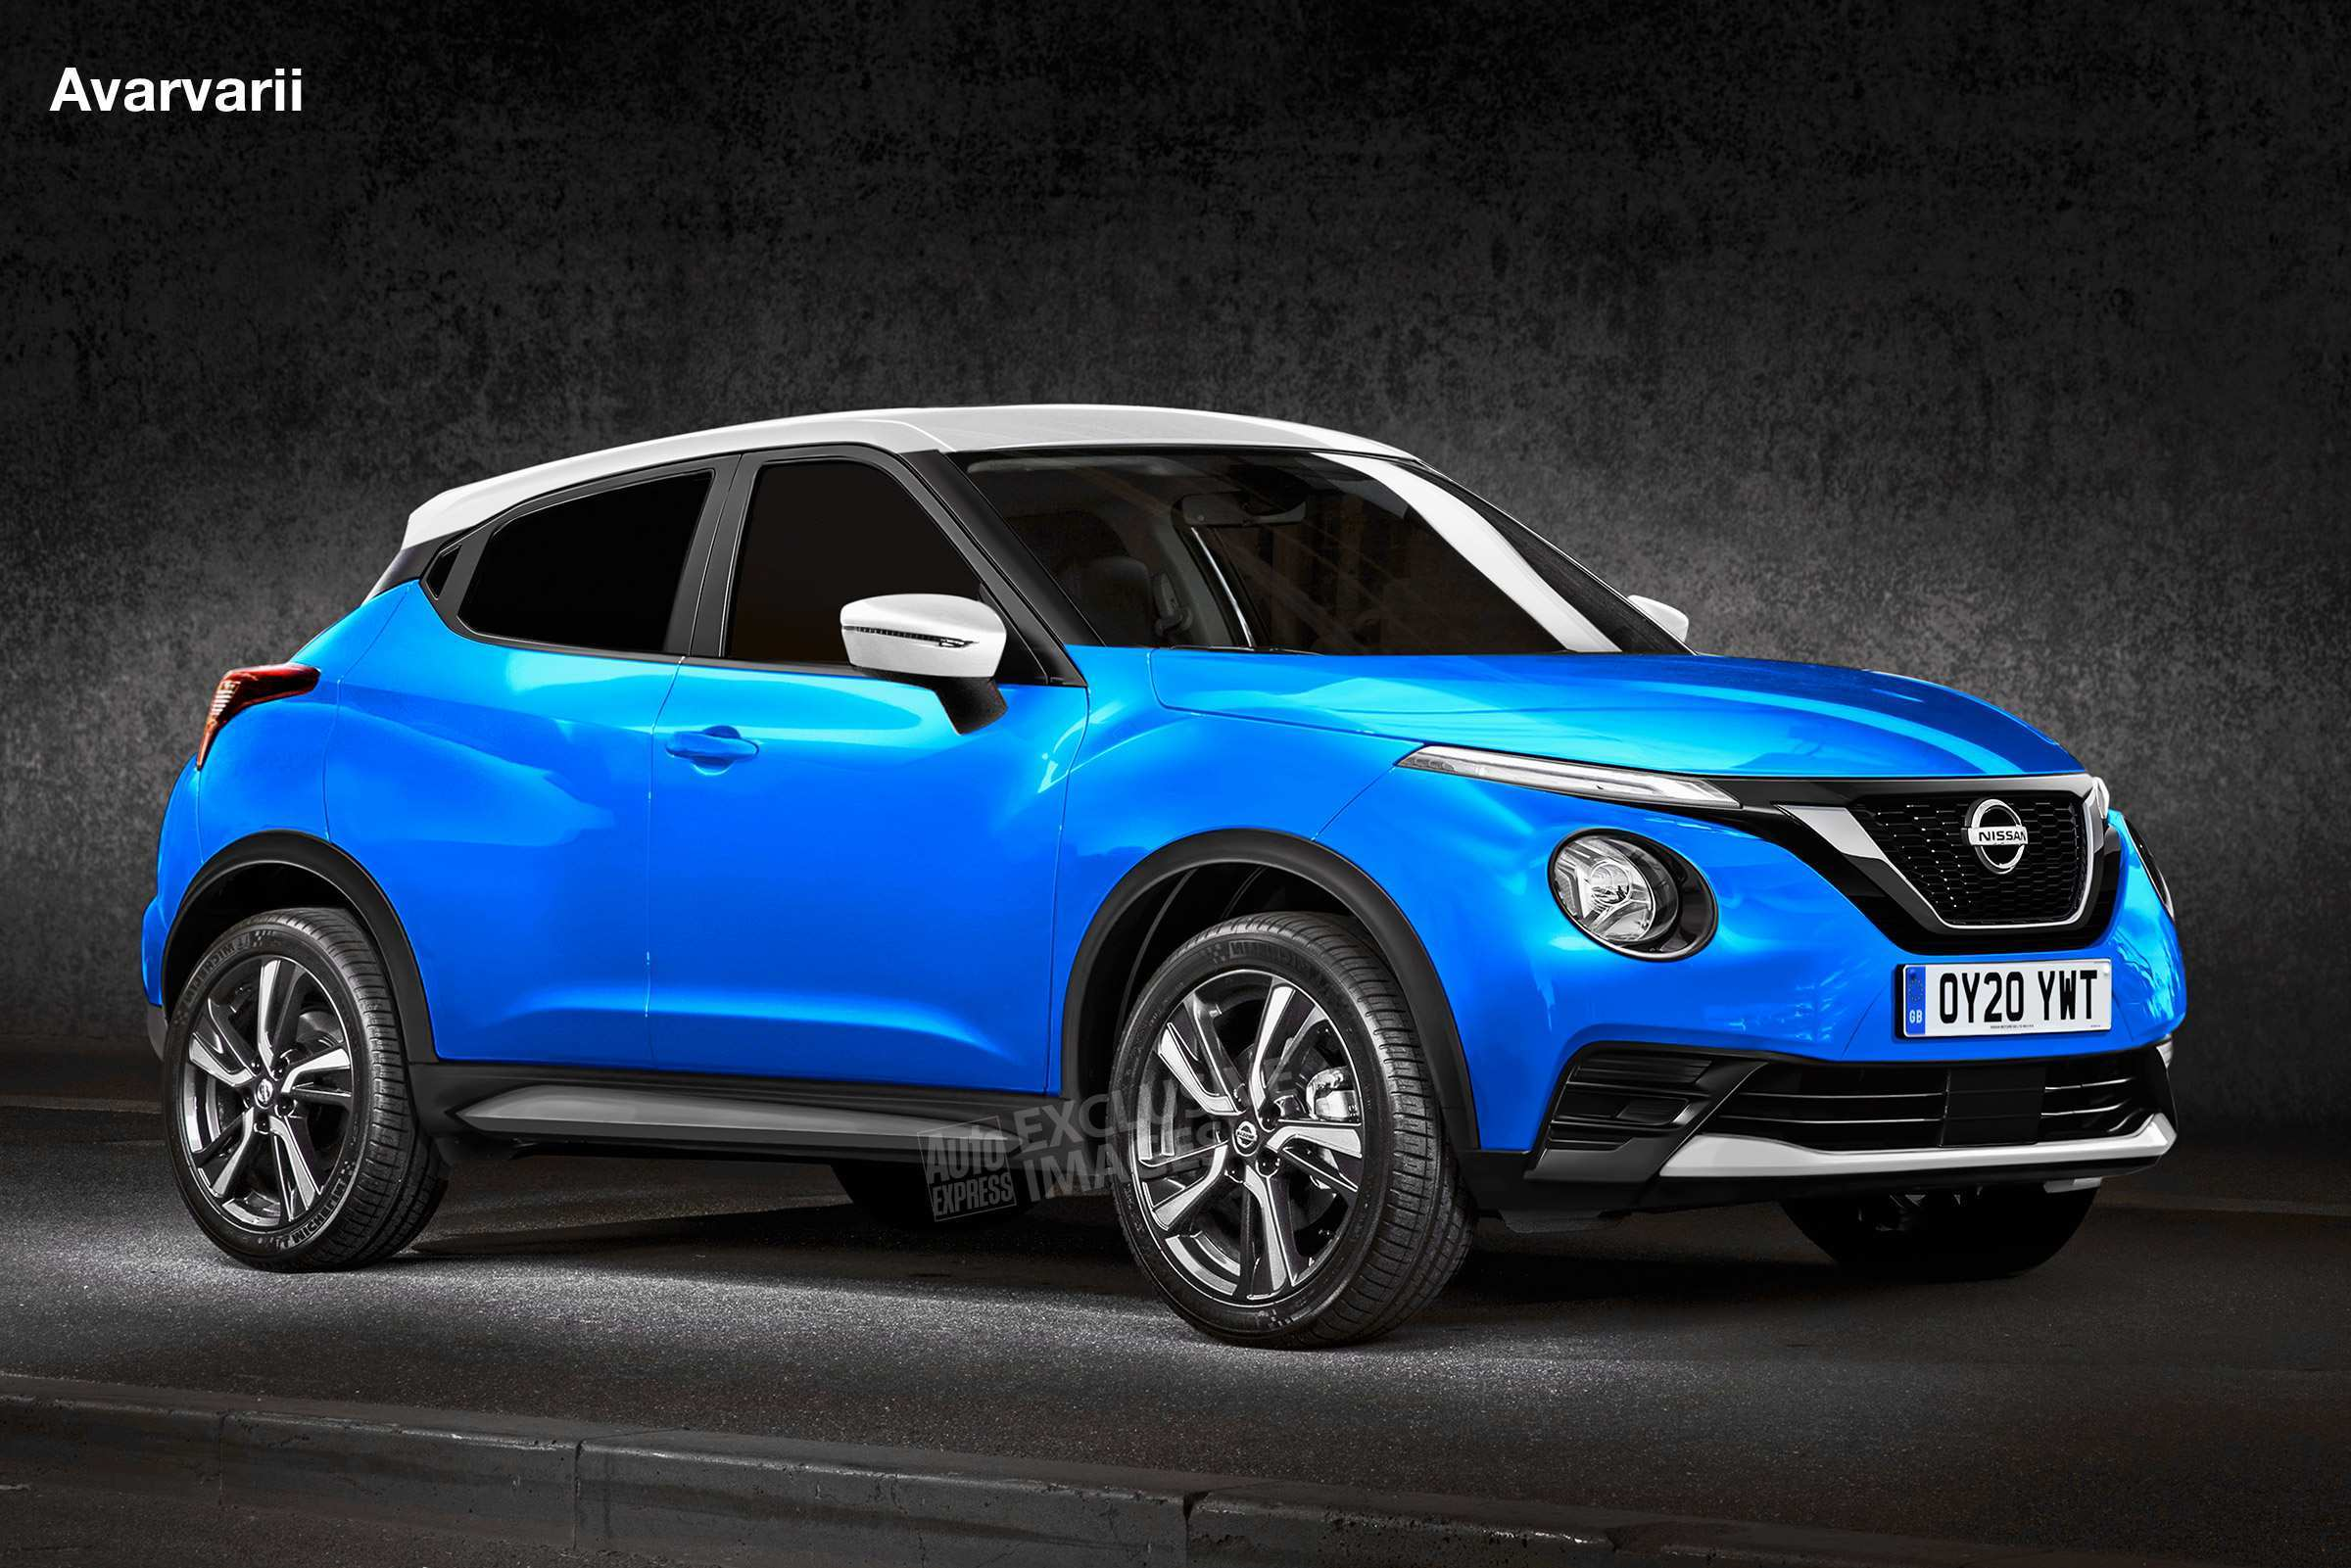 22 Concept of Nissan Juke 2020 Spy Shots Rumors with Nissan Juke 2020 Spy Shots